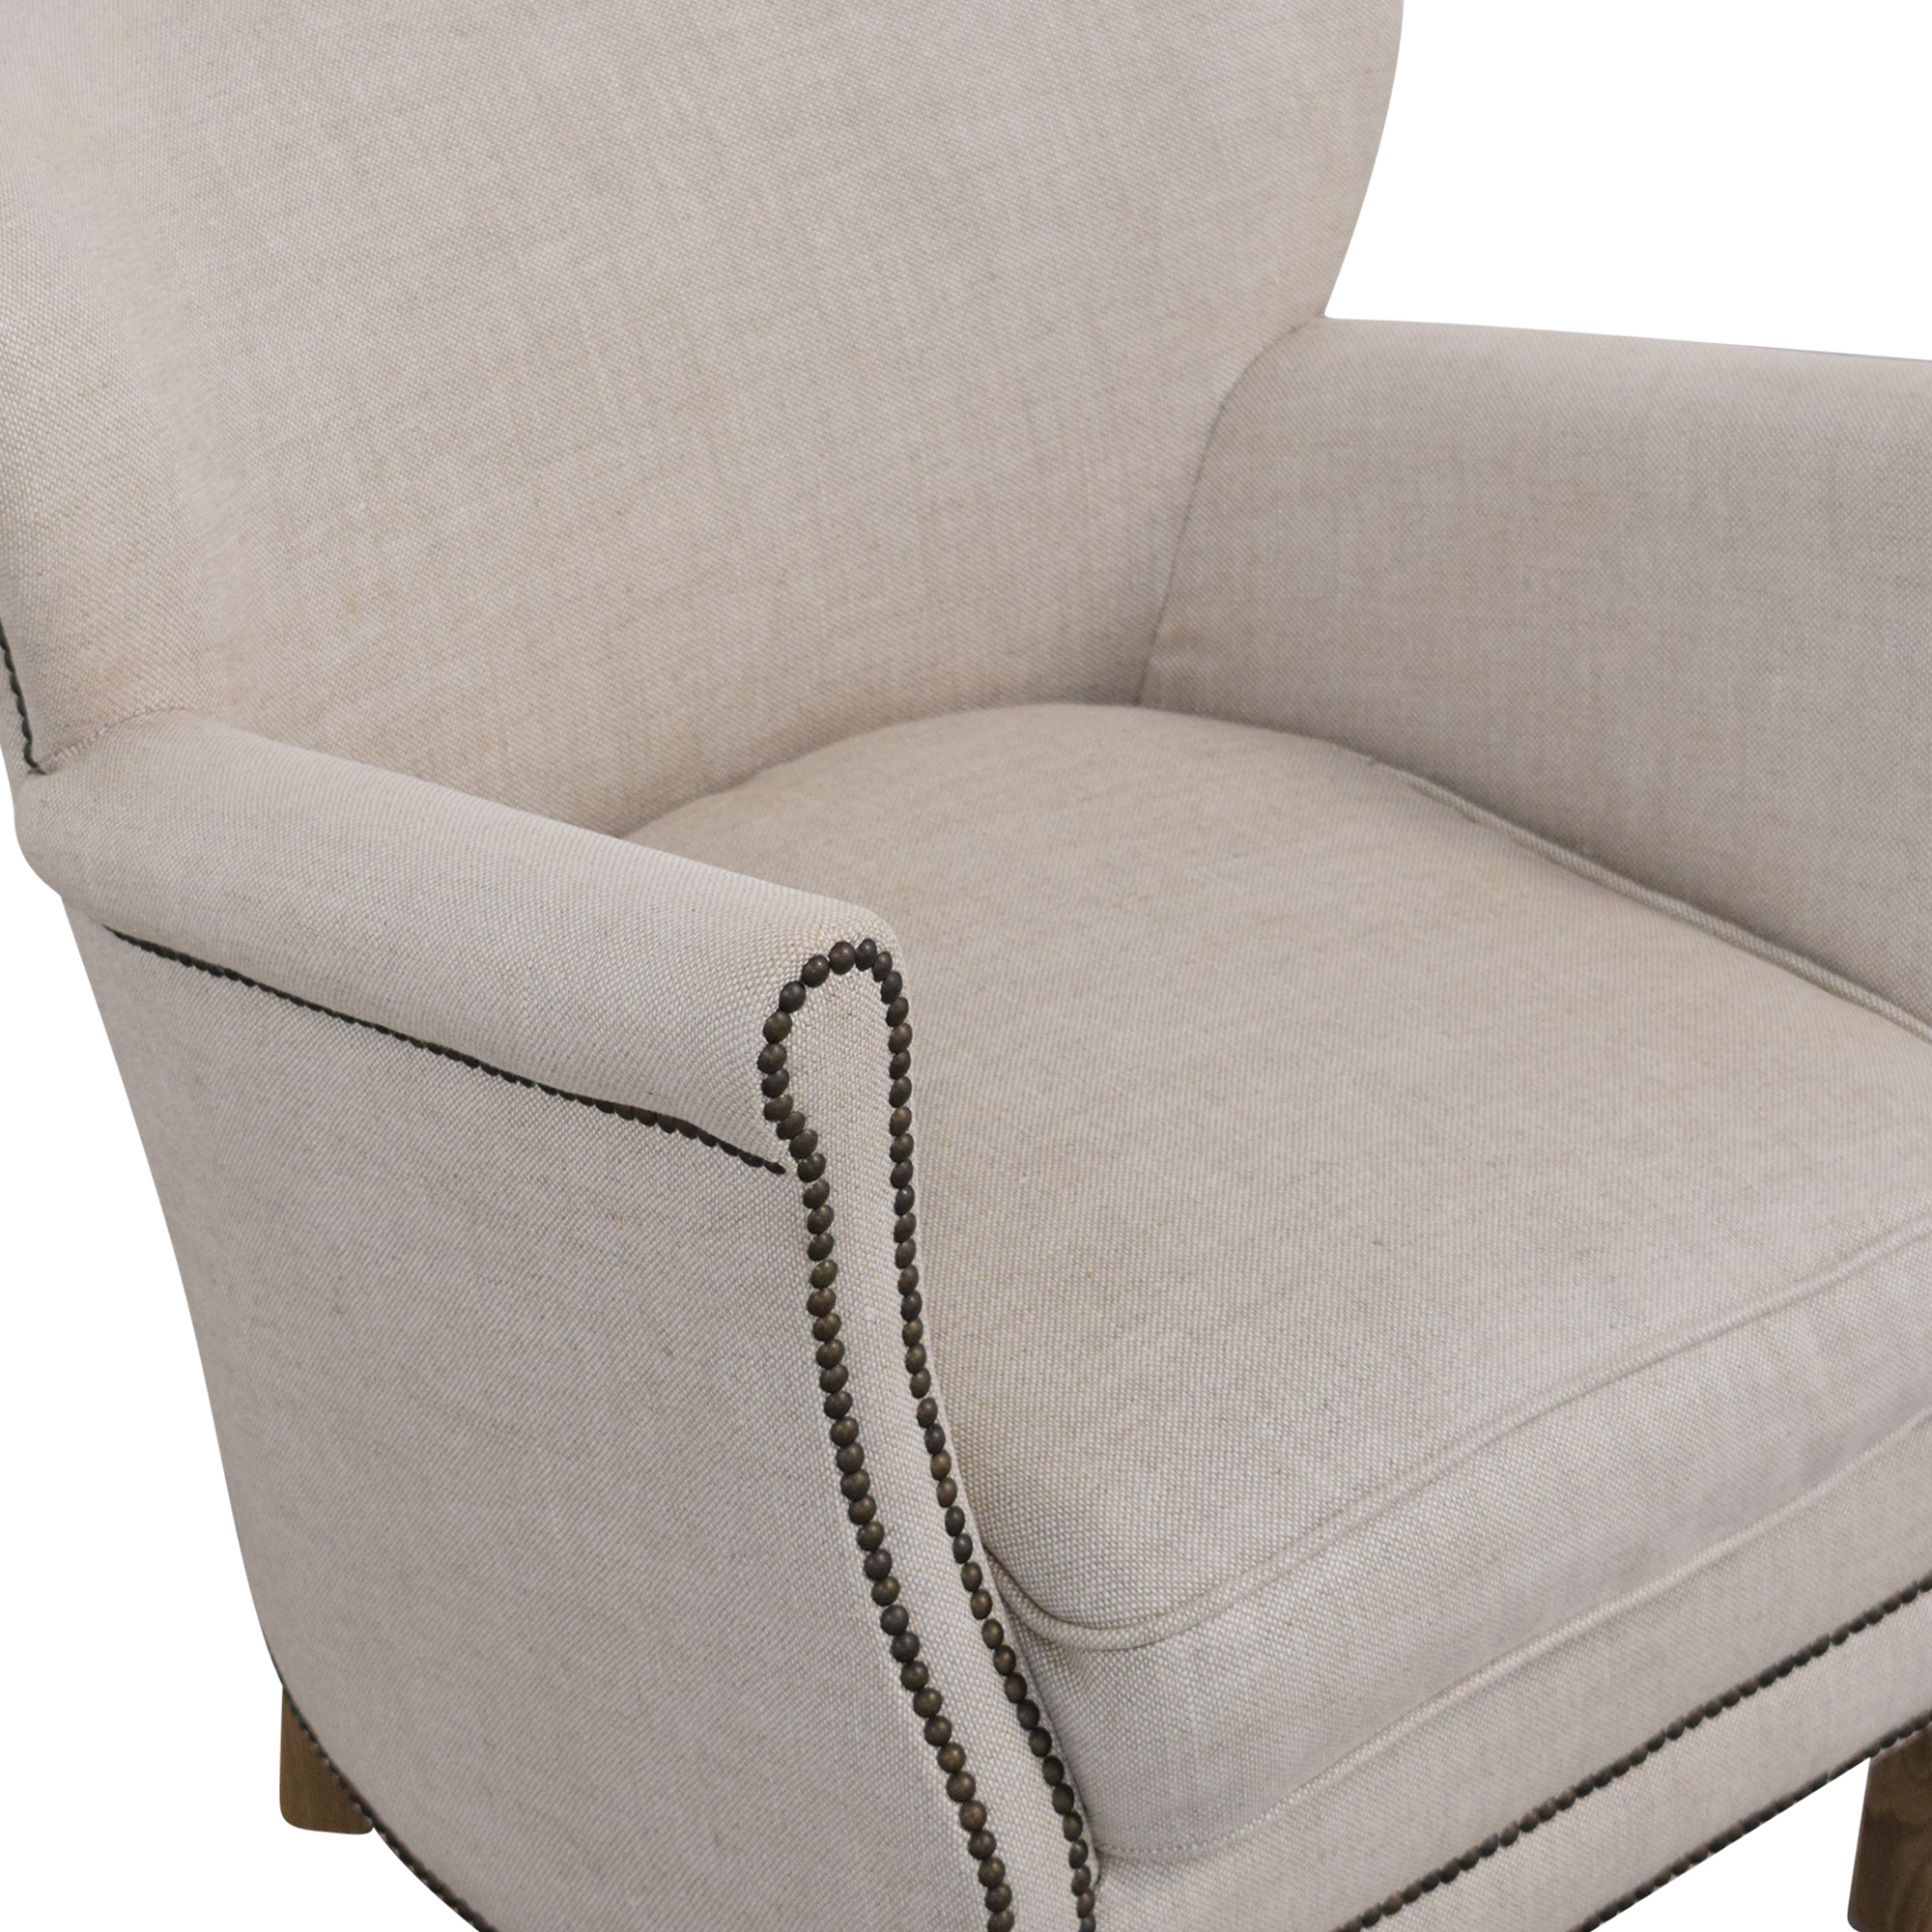 buy Restoration Hardware Restoration Hardware Professors Chair with Nailheads online